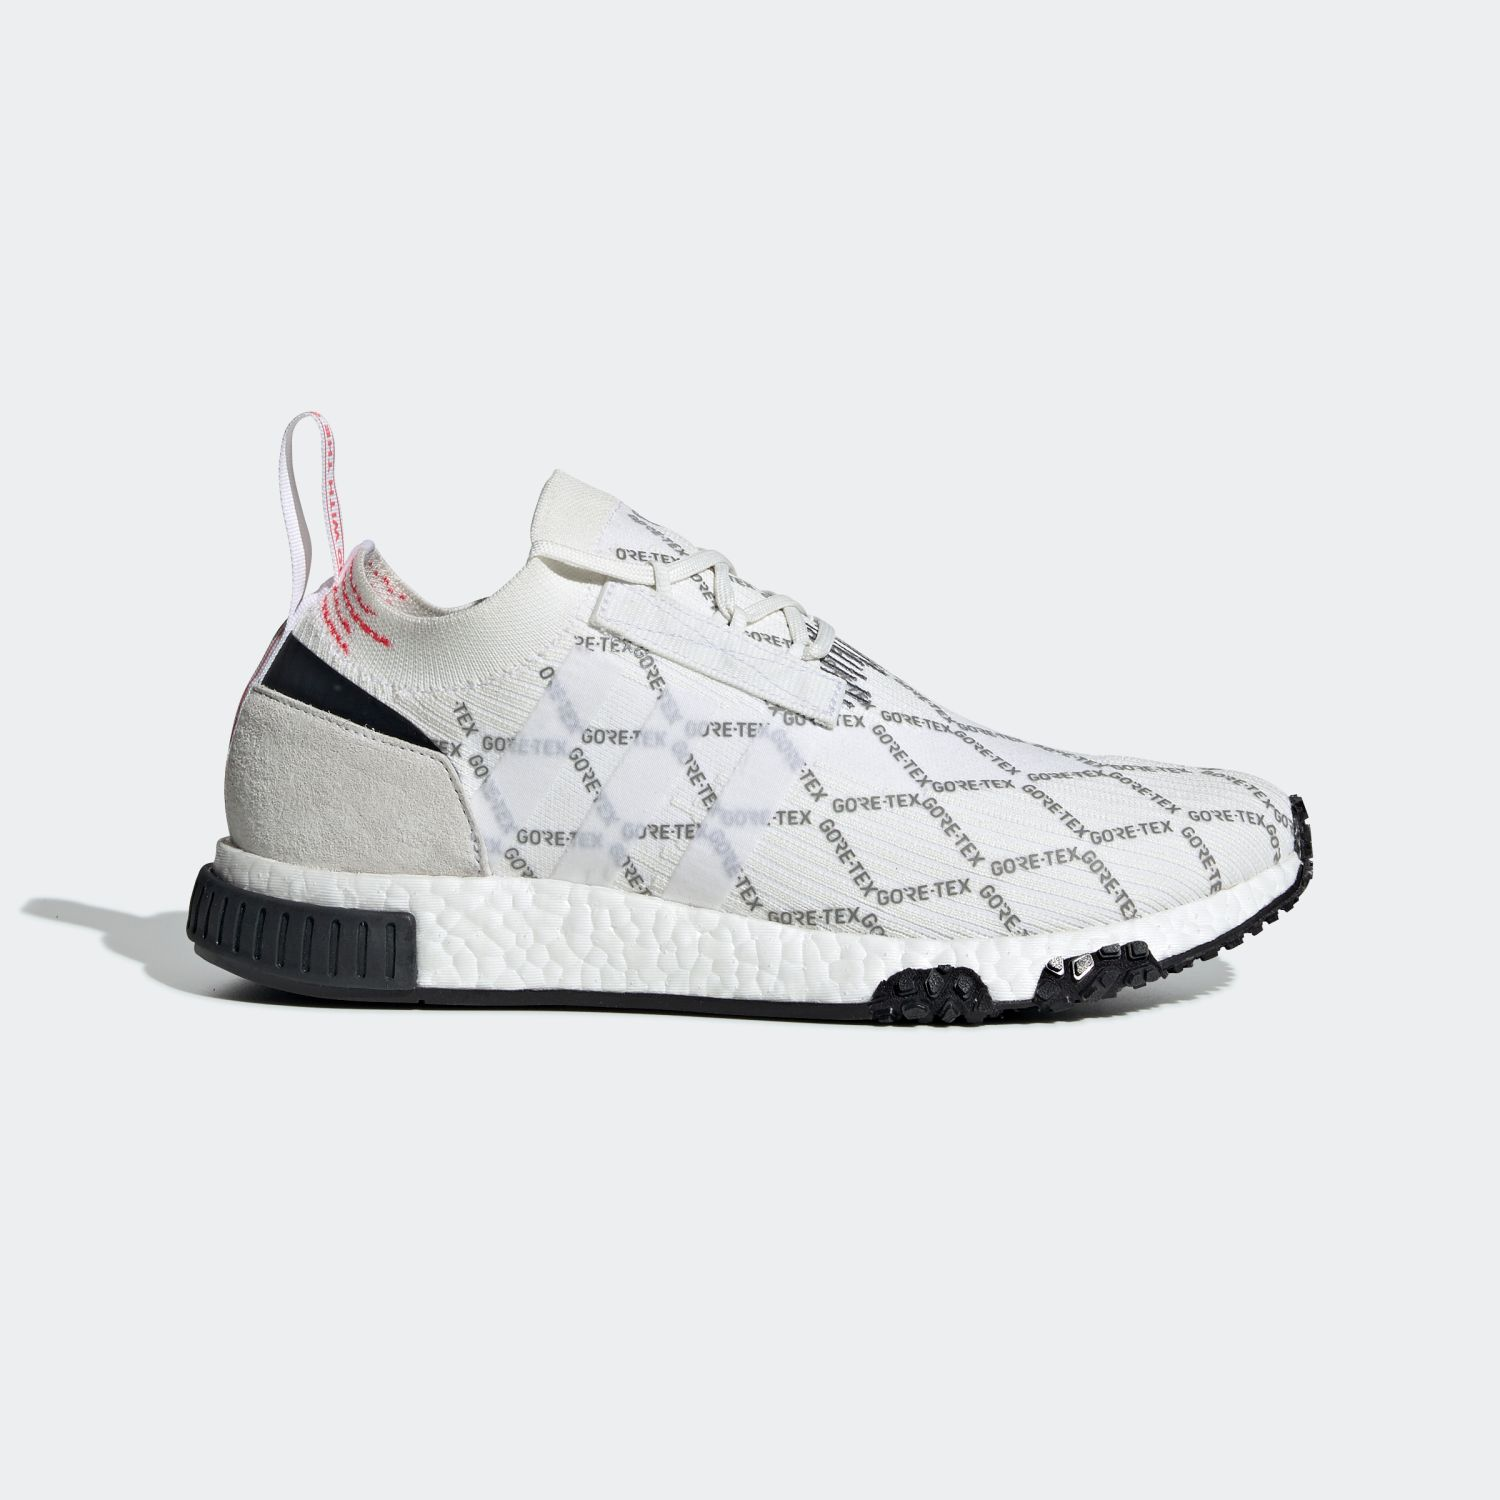 NMD Racer GORE-TEX White [1]